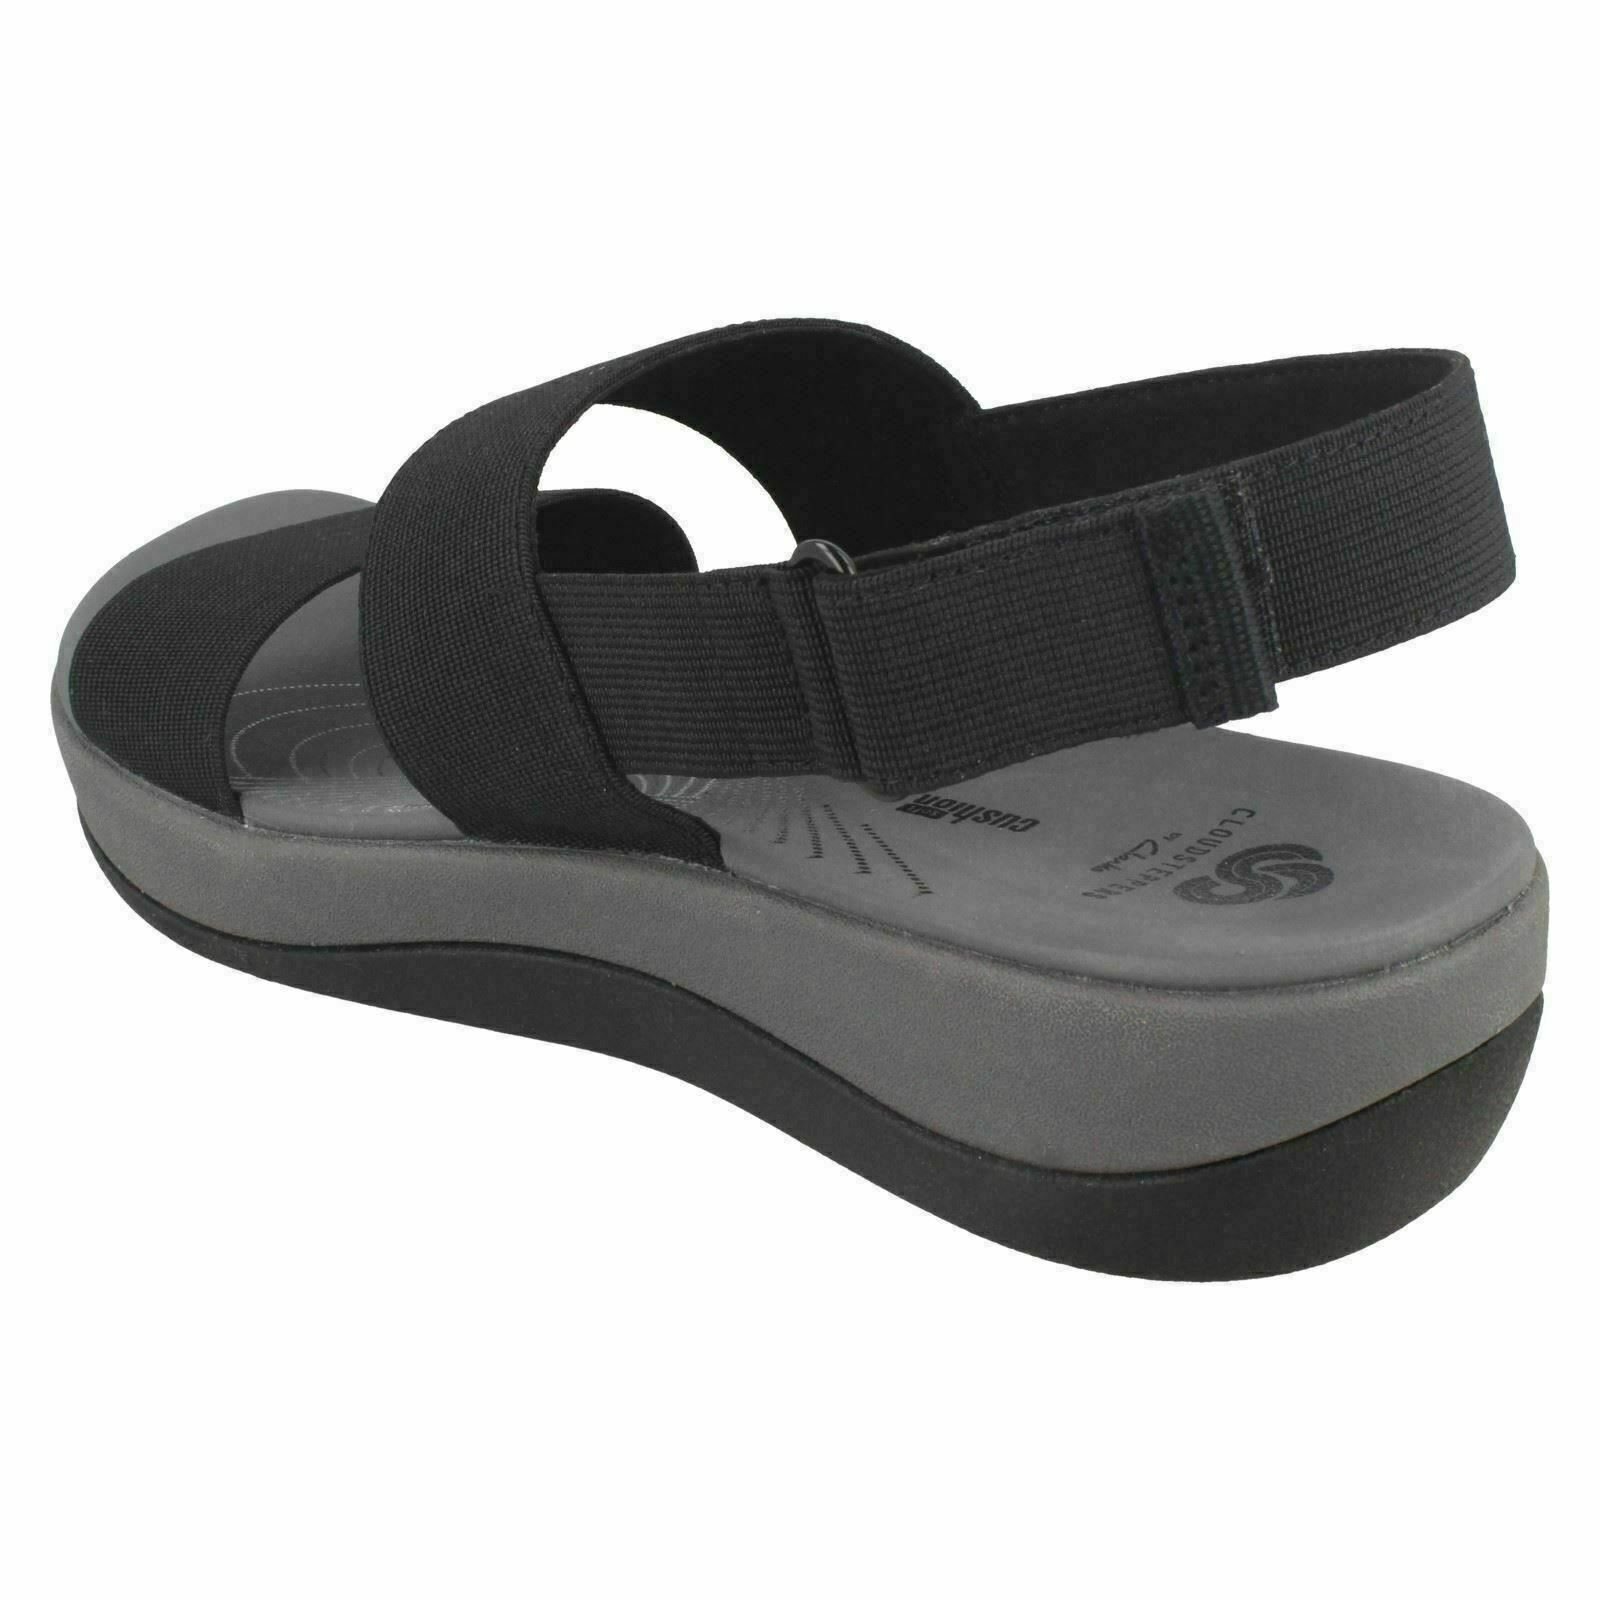 26b8532adbc6 Clarks Womens Arla Jacory Black and White Cloudsteppers Double Slingback  Sandals UK 5.5 for sale online